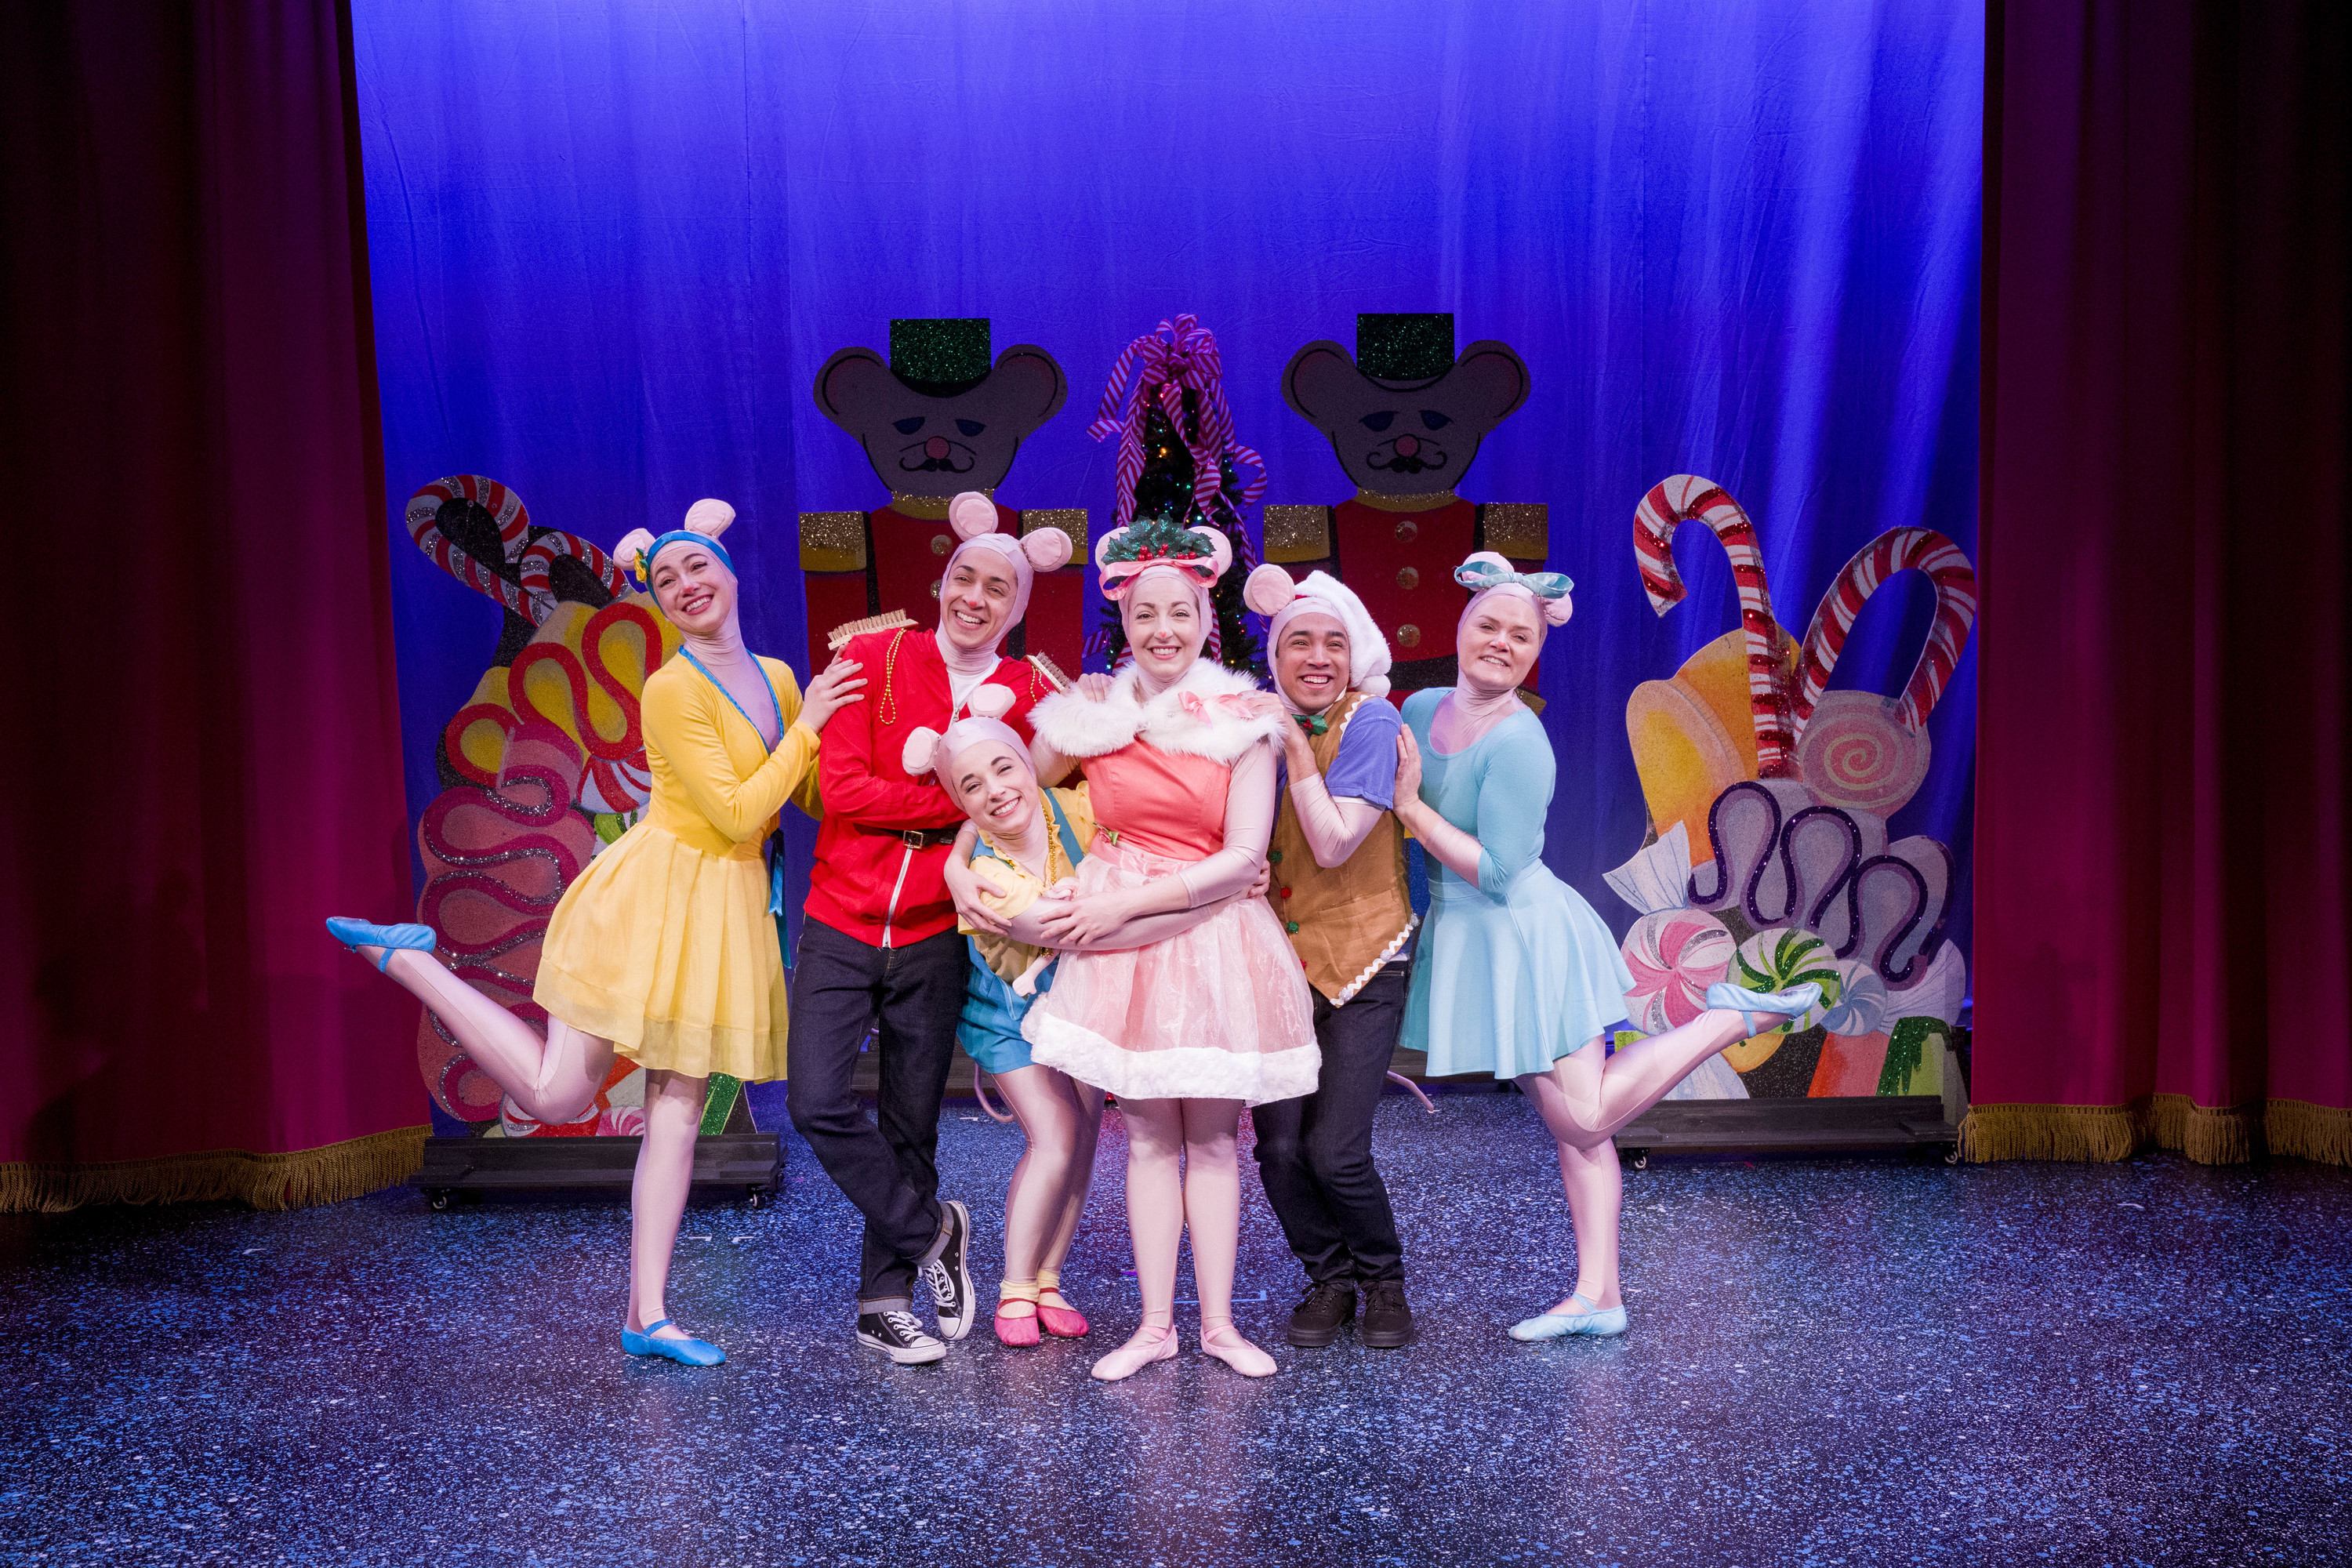 Angelina Ballerina: The Very Merry Holiday Musical!